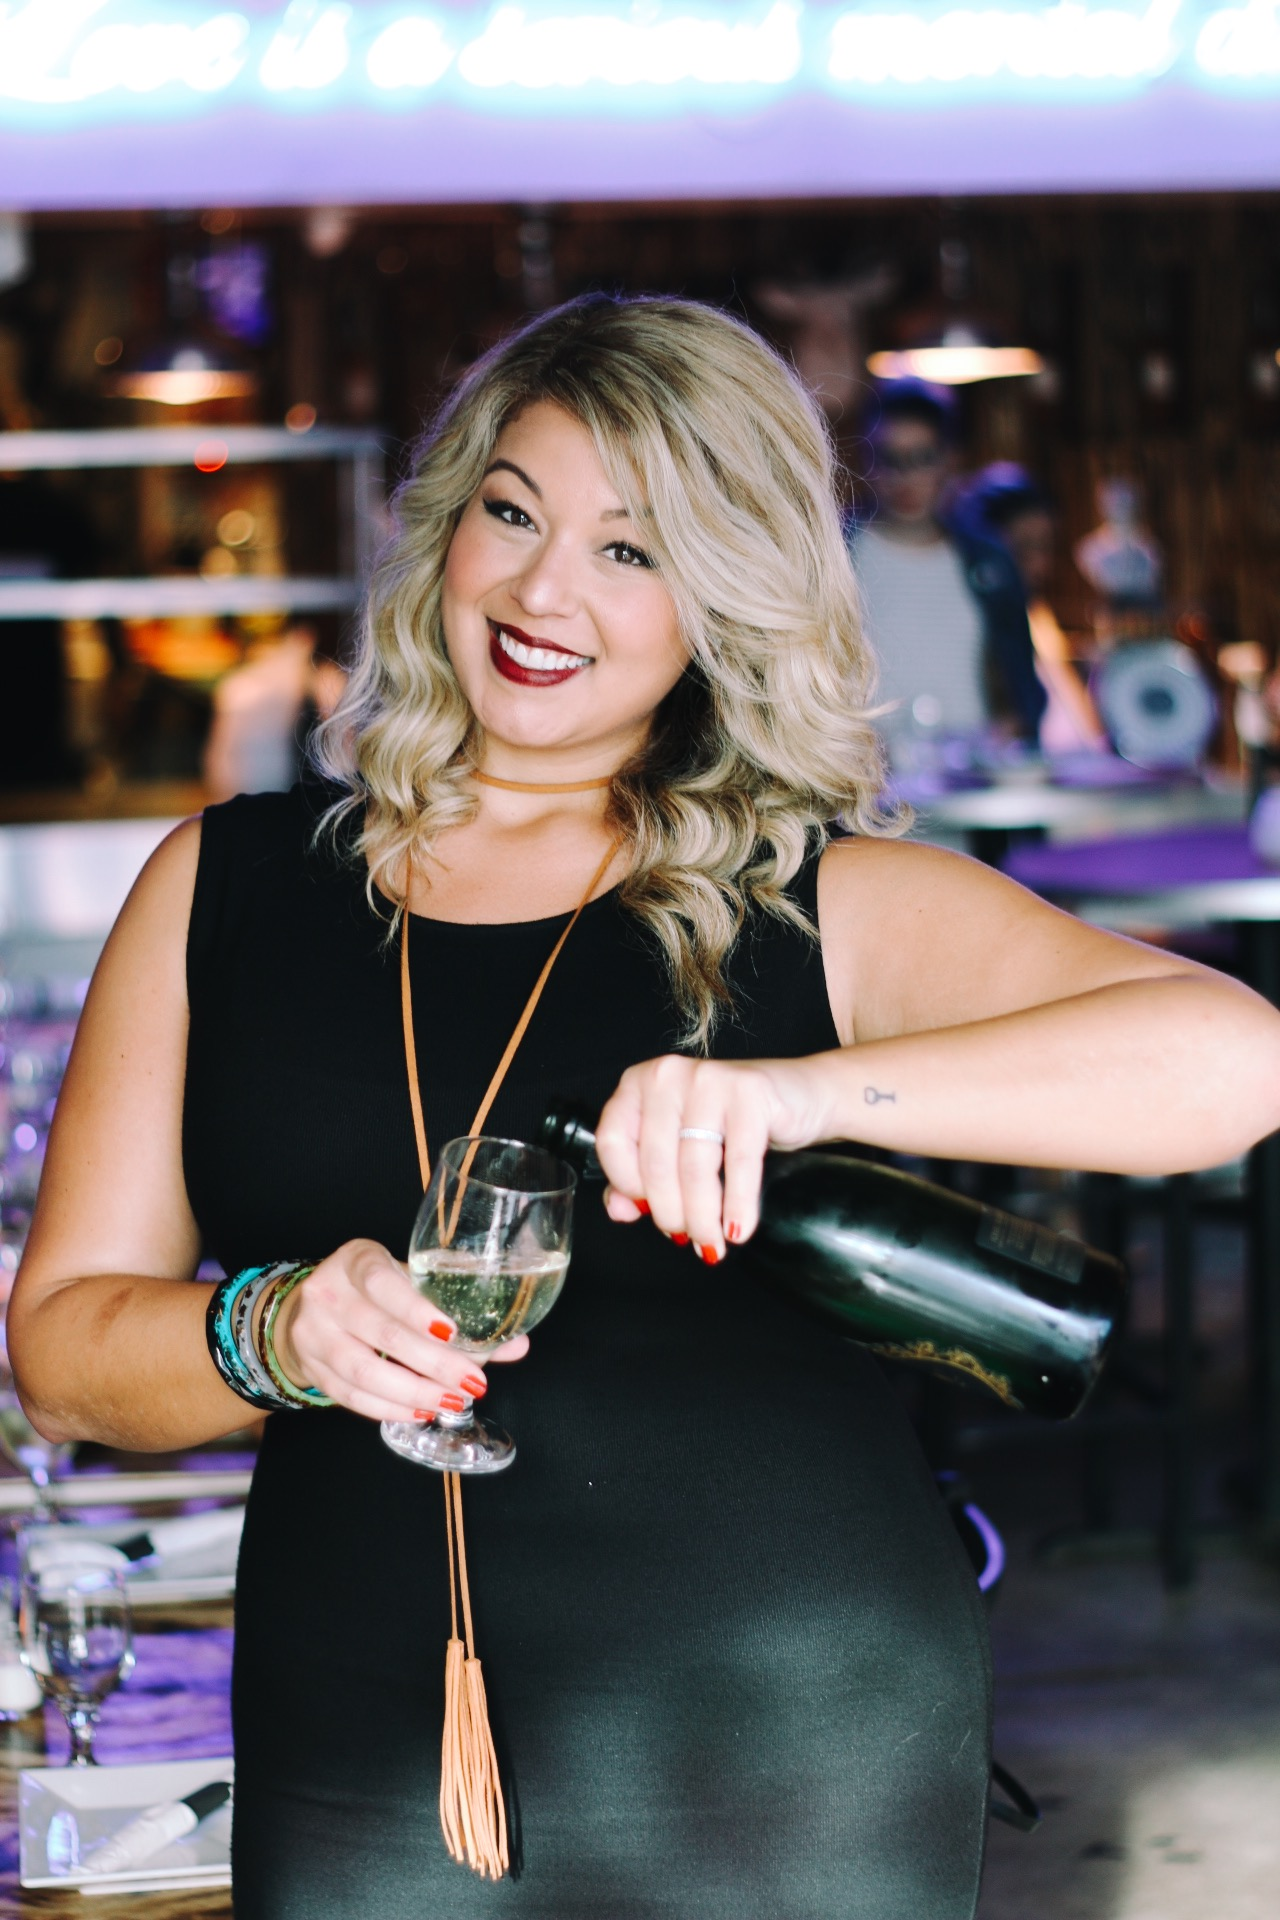 Your host: Natalie Leon,wine with nat